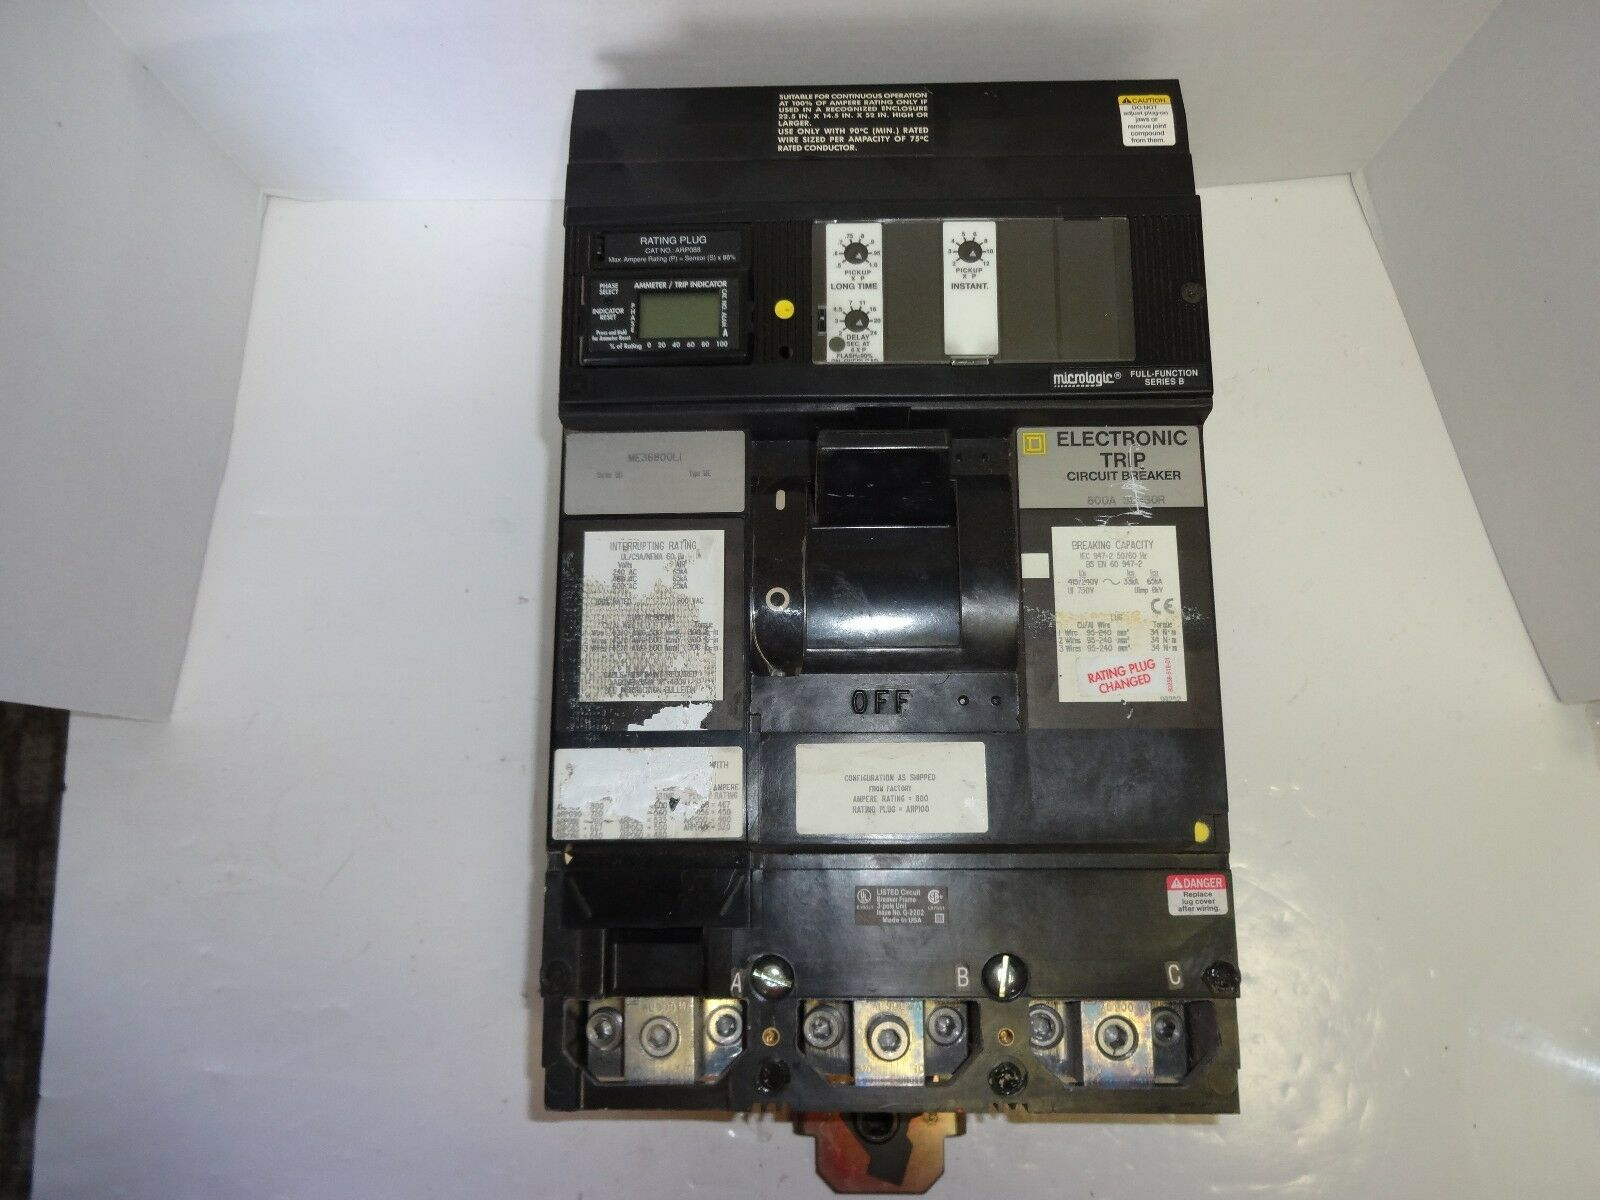 Square D ME36800LI  3 phase I-Line Circuit Breaker with ARP088 trip unit